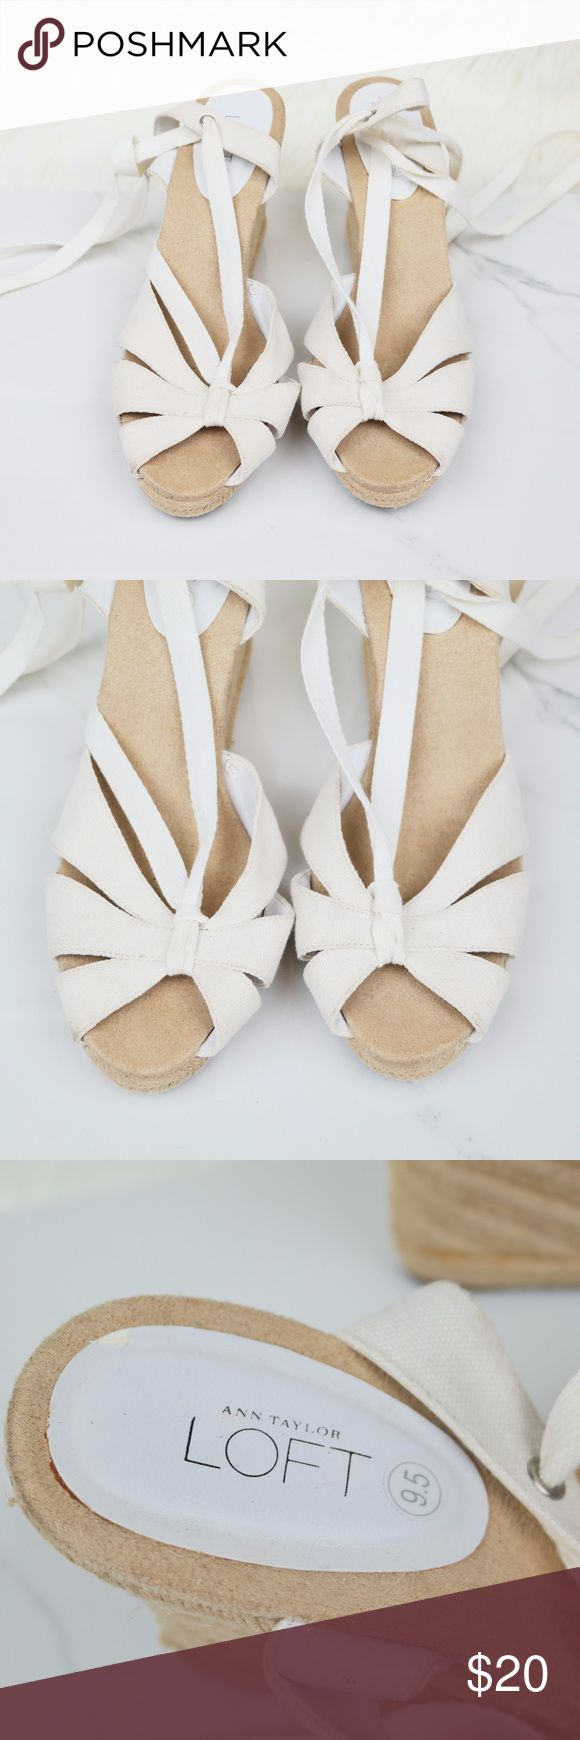 """Ann Taylor LOFT White Espadrille Wedges Size 9.5 Brand: Ann Taylor LOFT  Size: 9.5  Condition: Pre-loved  Materials: Fabric  Details: White, Espadrilles  Heel height: 4""""  Same or Next day shipping Check out my other items! Order more to save on shipping! S106-1 Ann Taylor Shoes Wedges"""